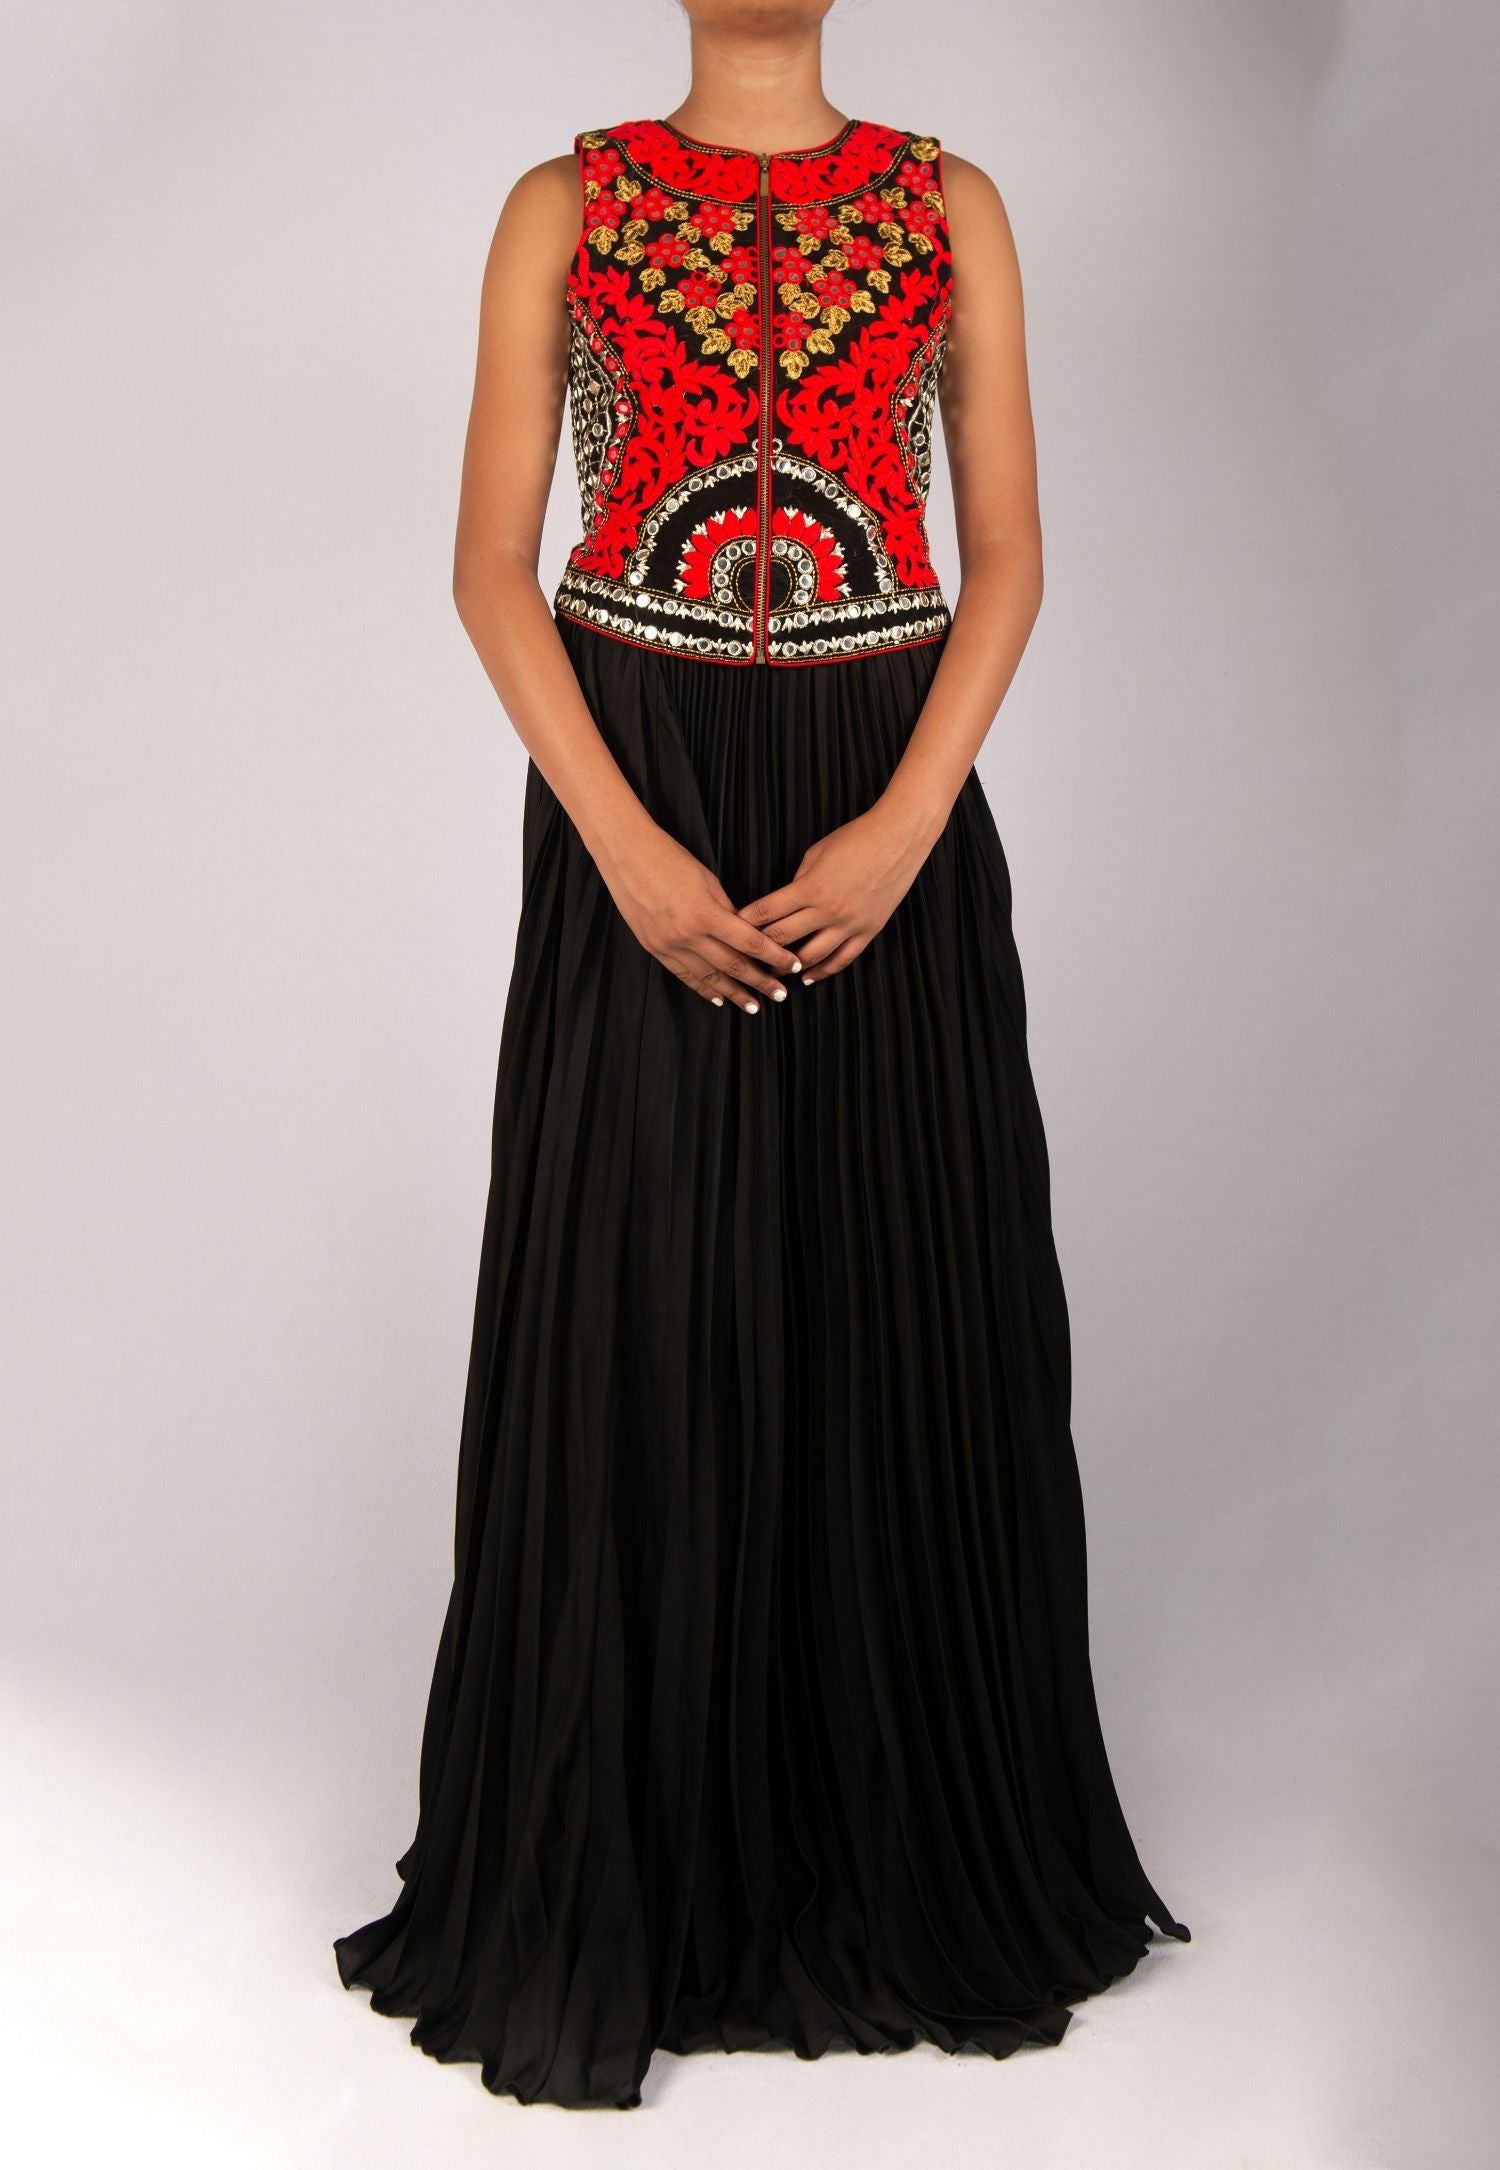 EXQUISITELY MIRROR EMBROIDERED TOP WITH PLEATED SKIRT